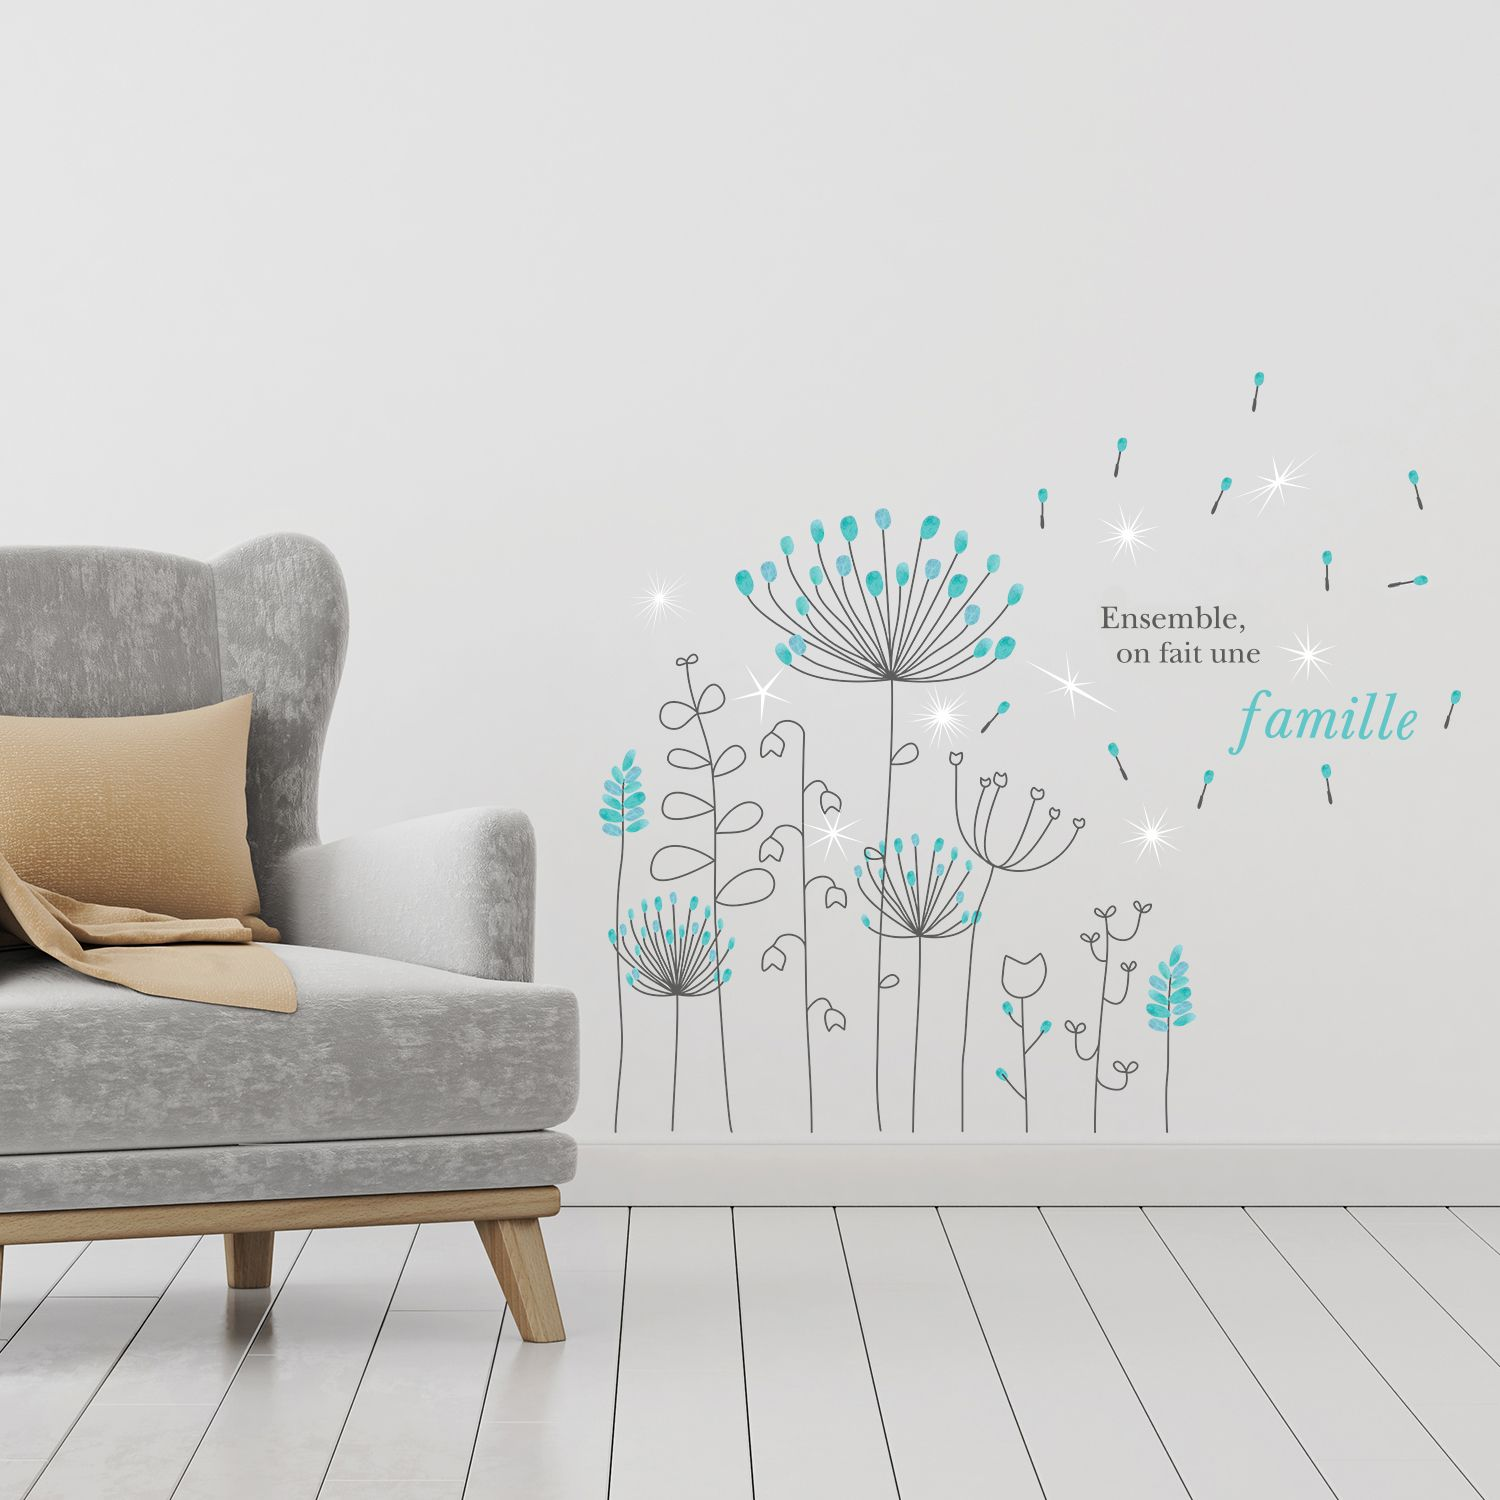 French Quote Dandelion with Swarovski Crystals Wall Sticker